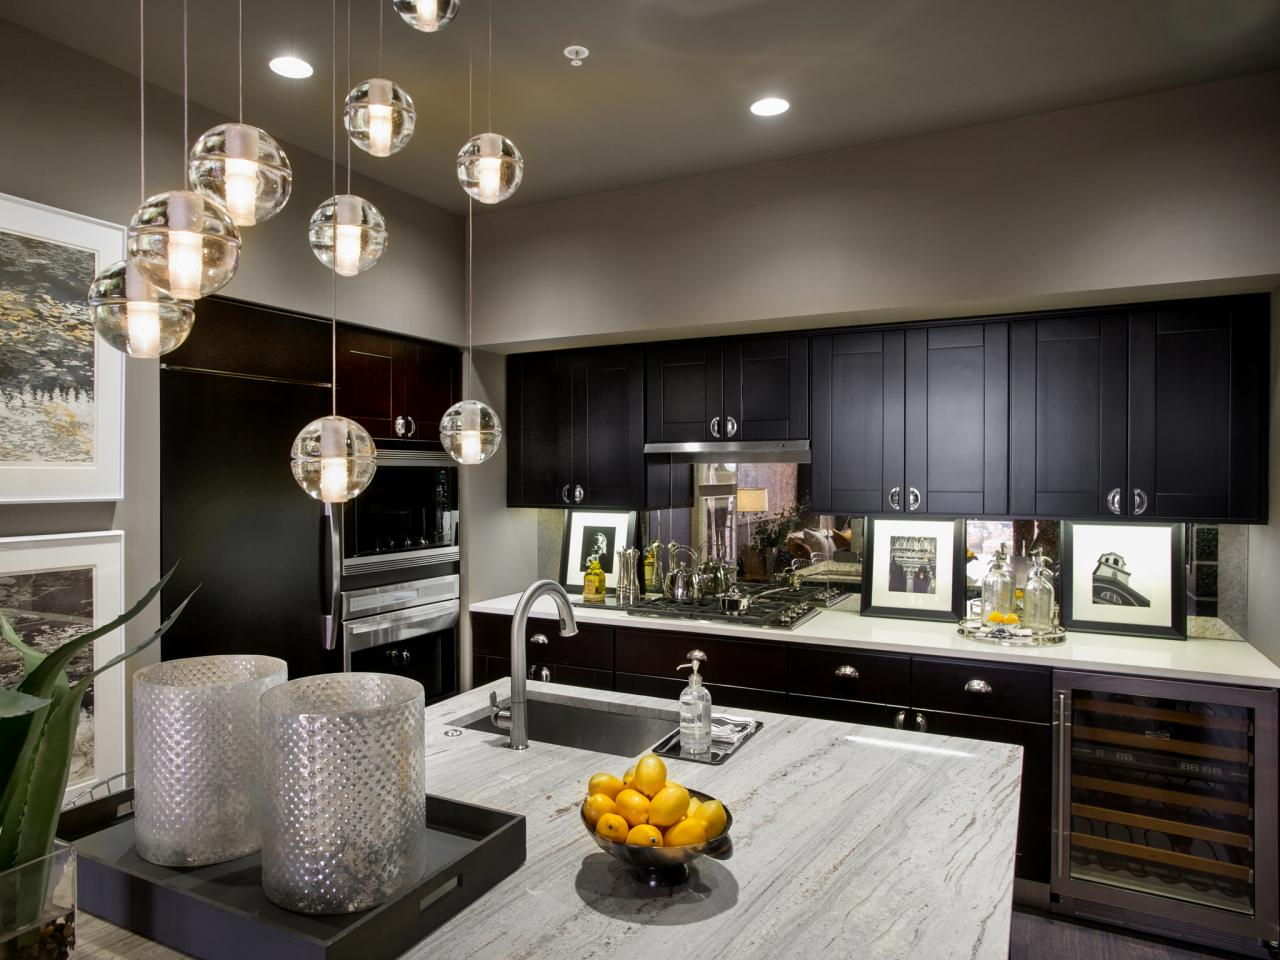 Modern kitchen paint colors pictures ideas from hgtv hgtv for Kitchen colors with white cabinets with modern black and white wall art